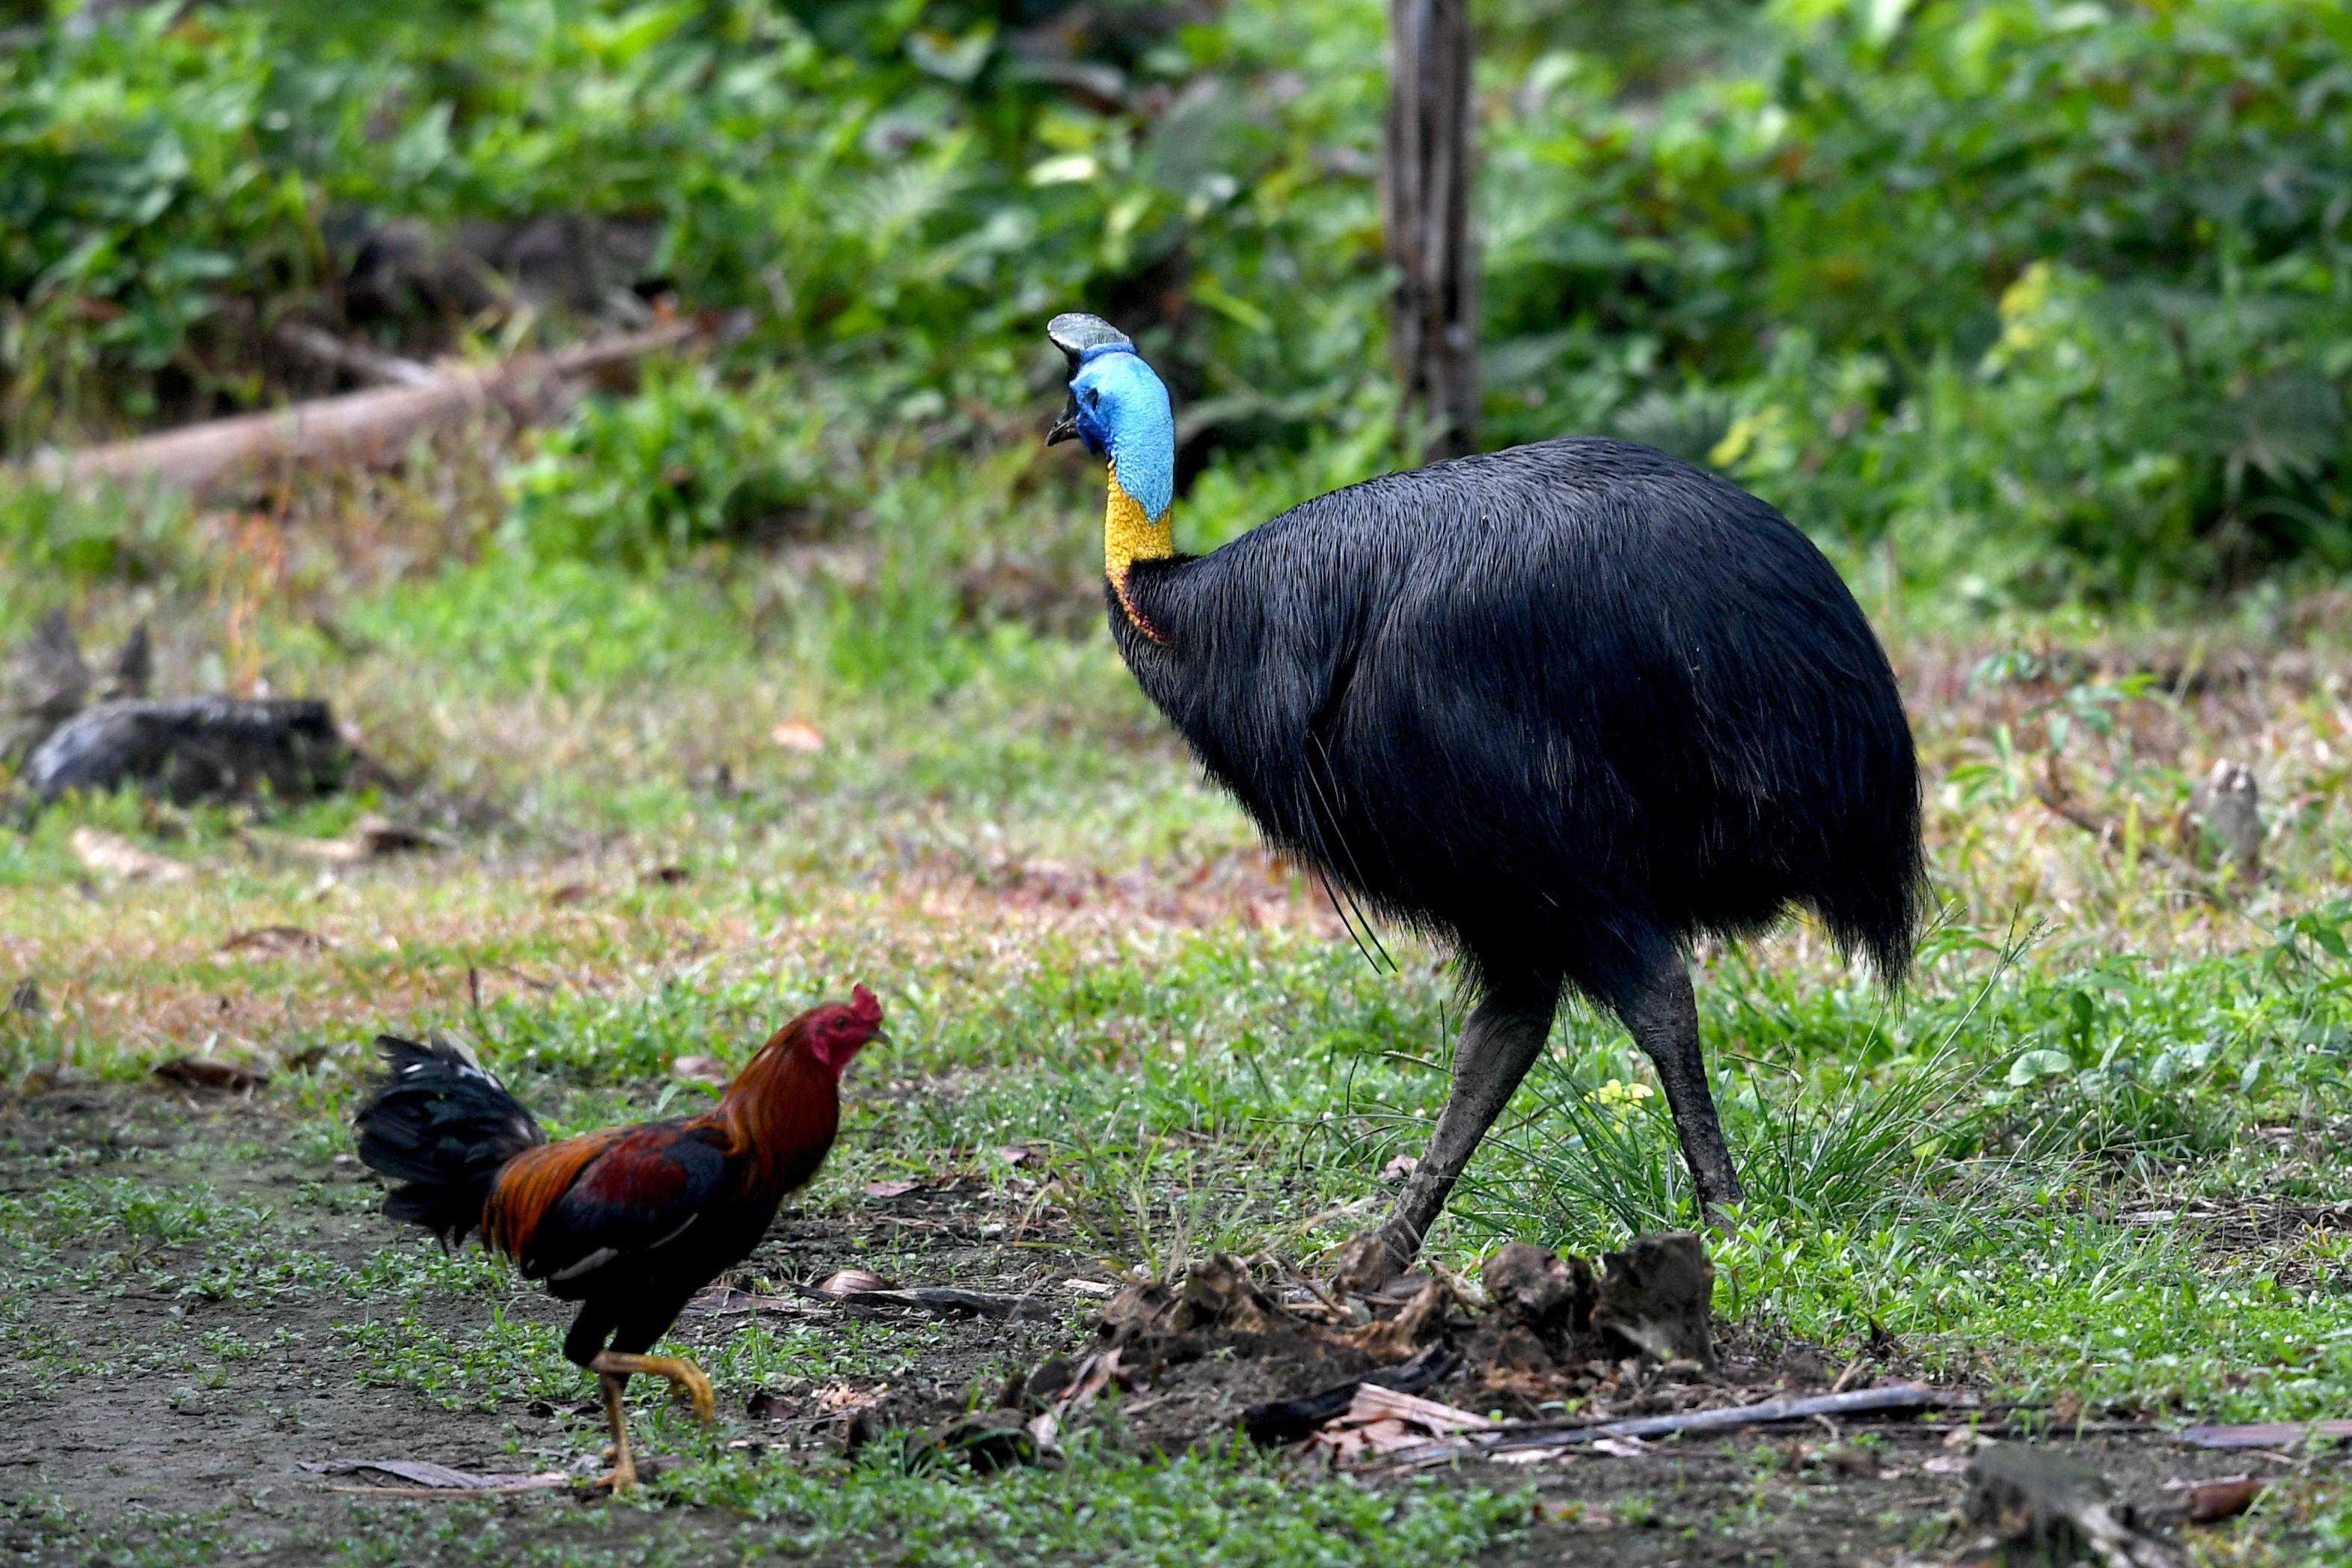 A cassowary and a chicken in a grassy area.